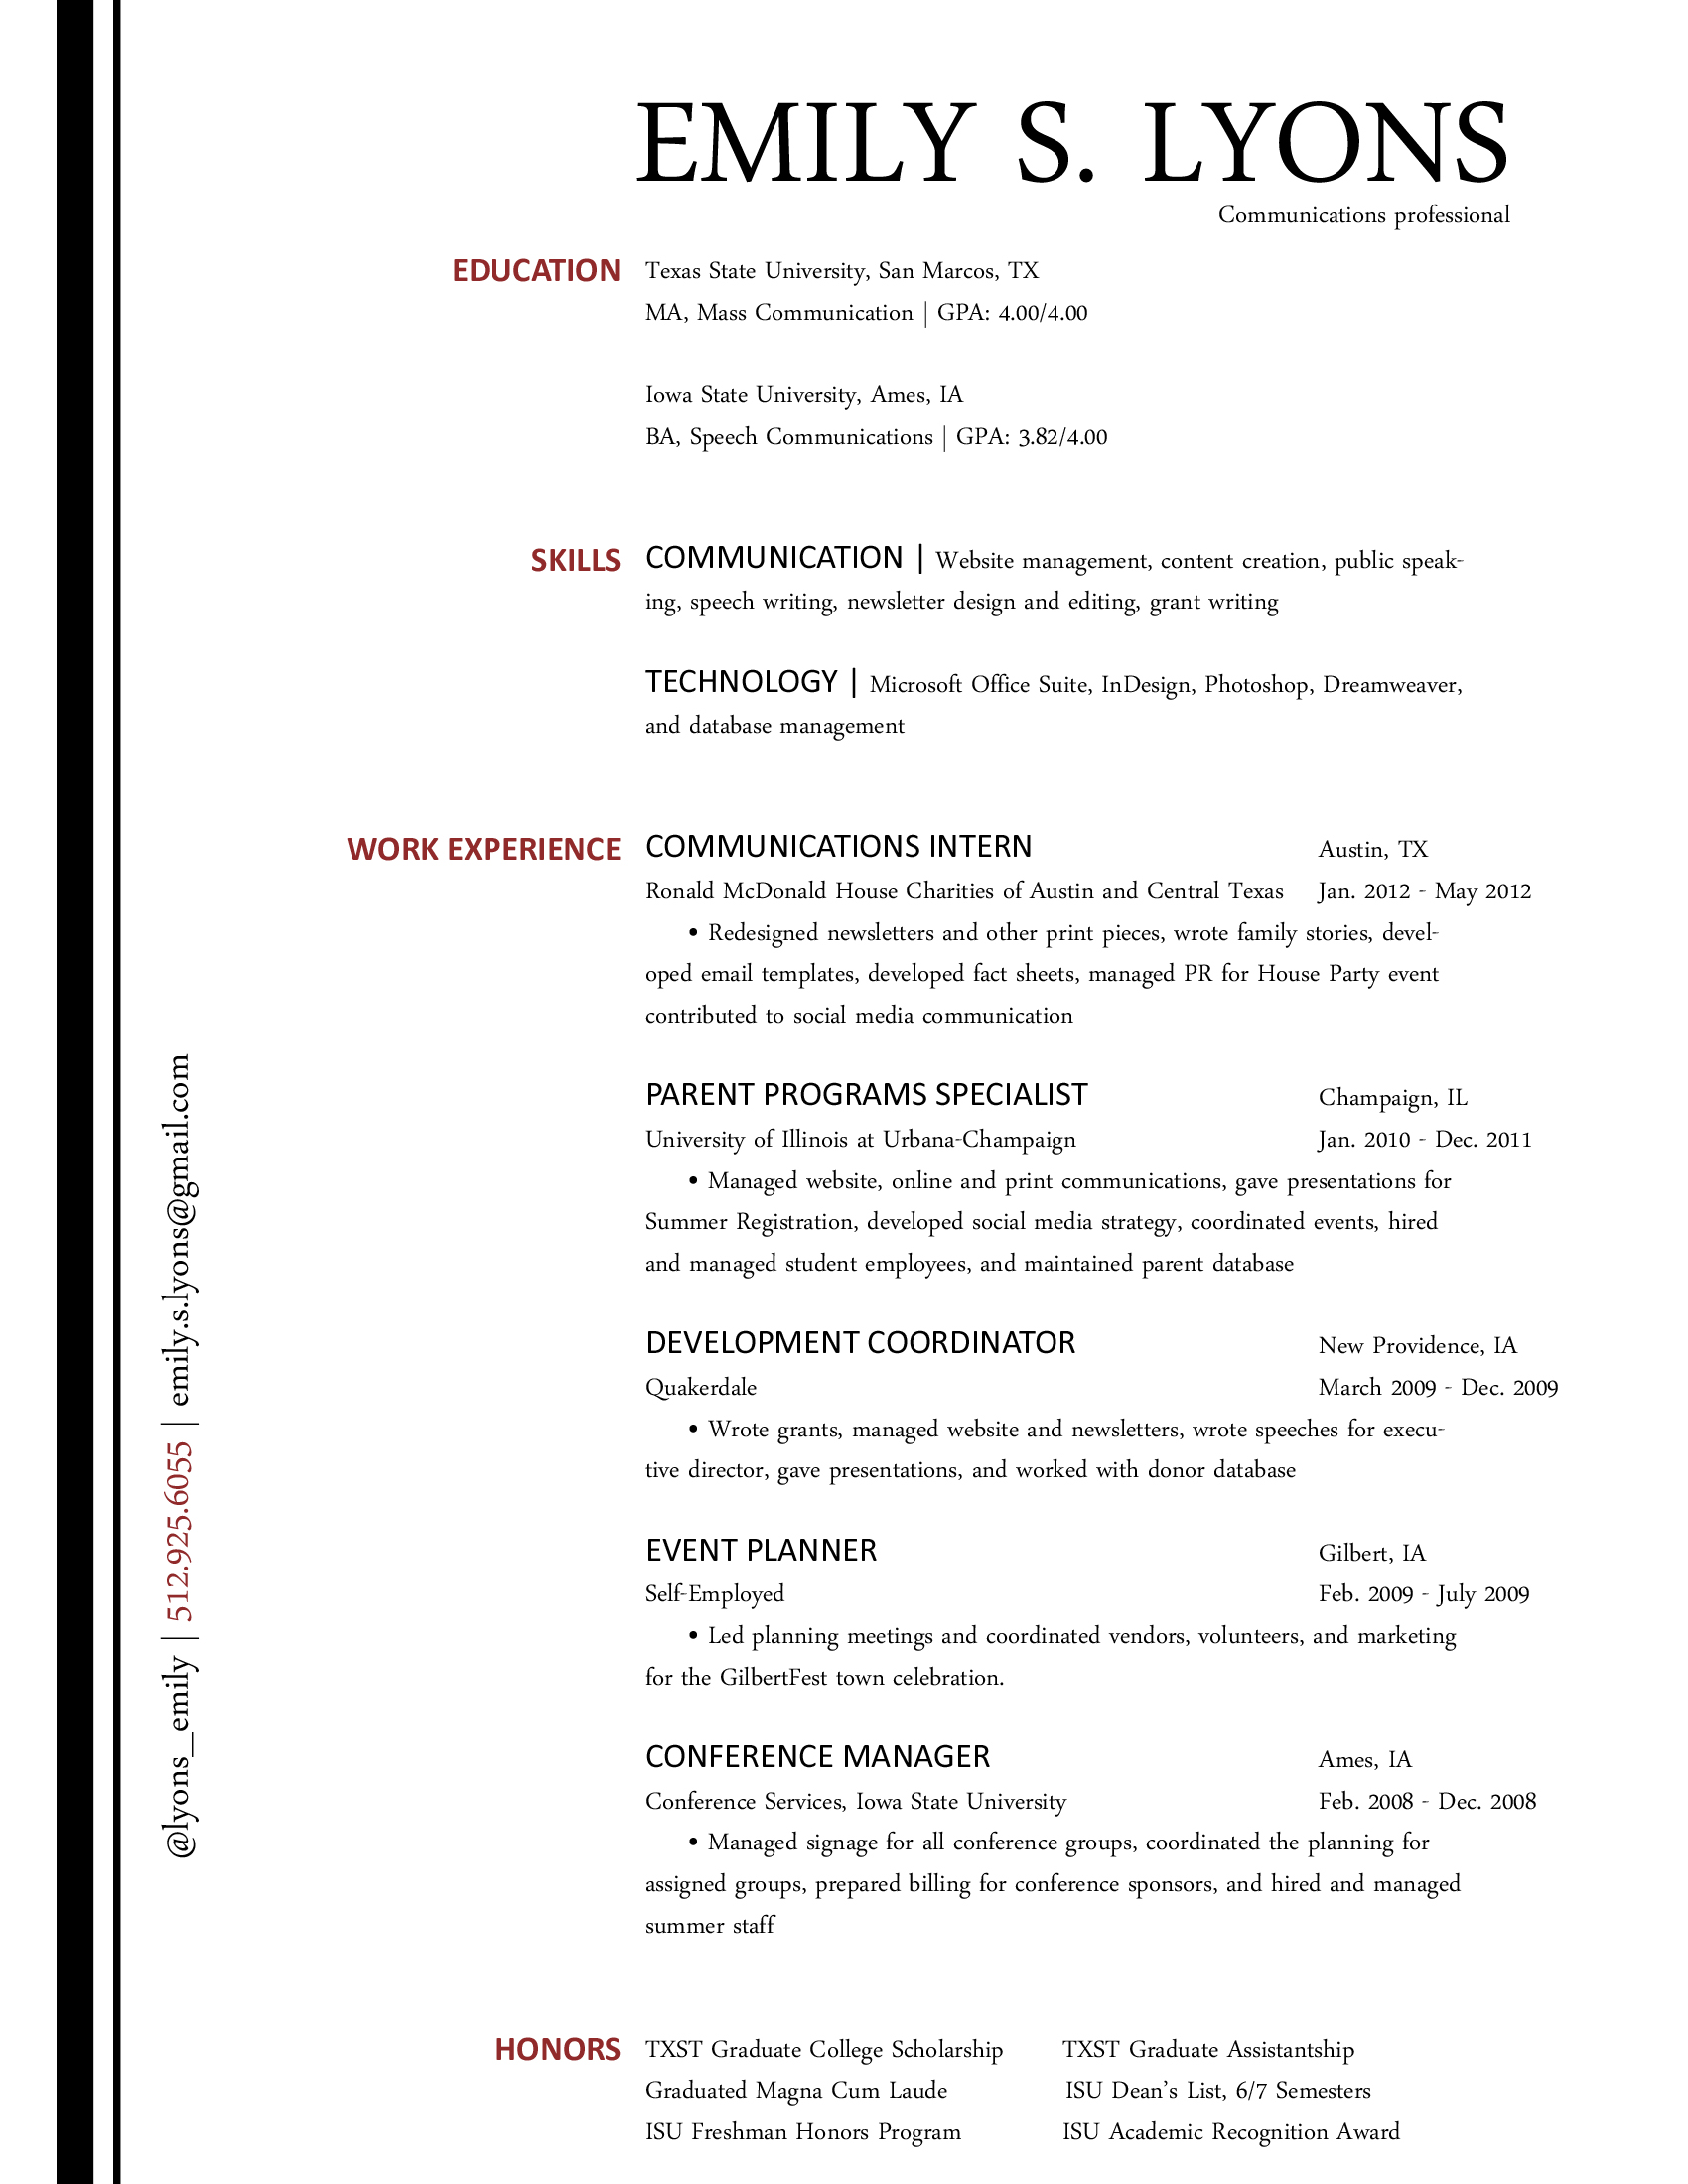 Resume Waitress Responsibilities Resume resume for a waitress great sample resumes event planning proposal job server waiter templates cipanewsletter emilyresume short resumehtml